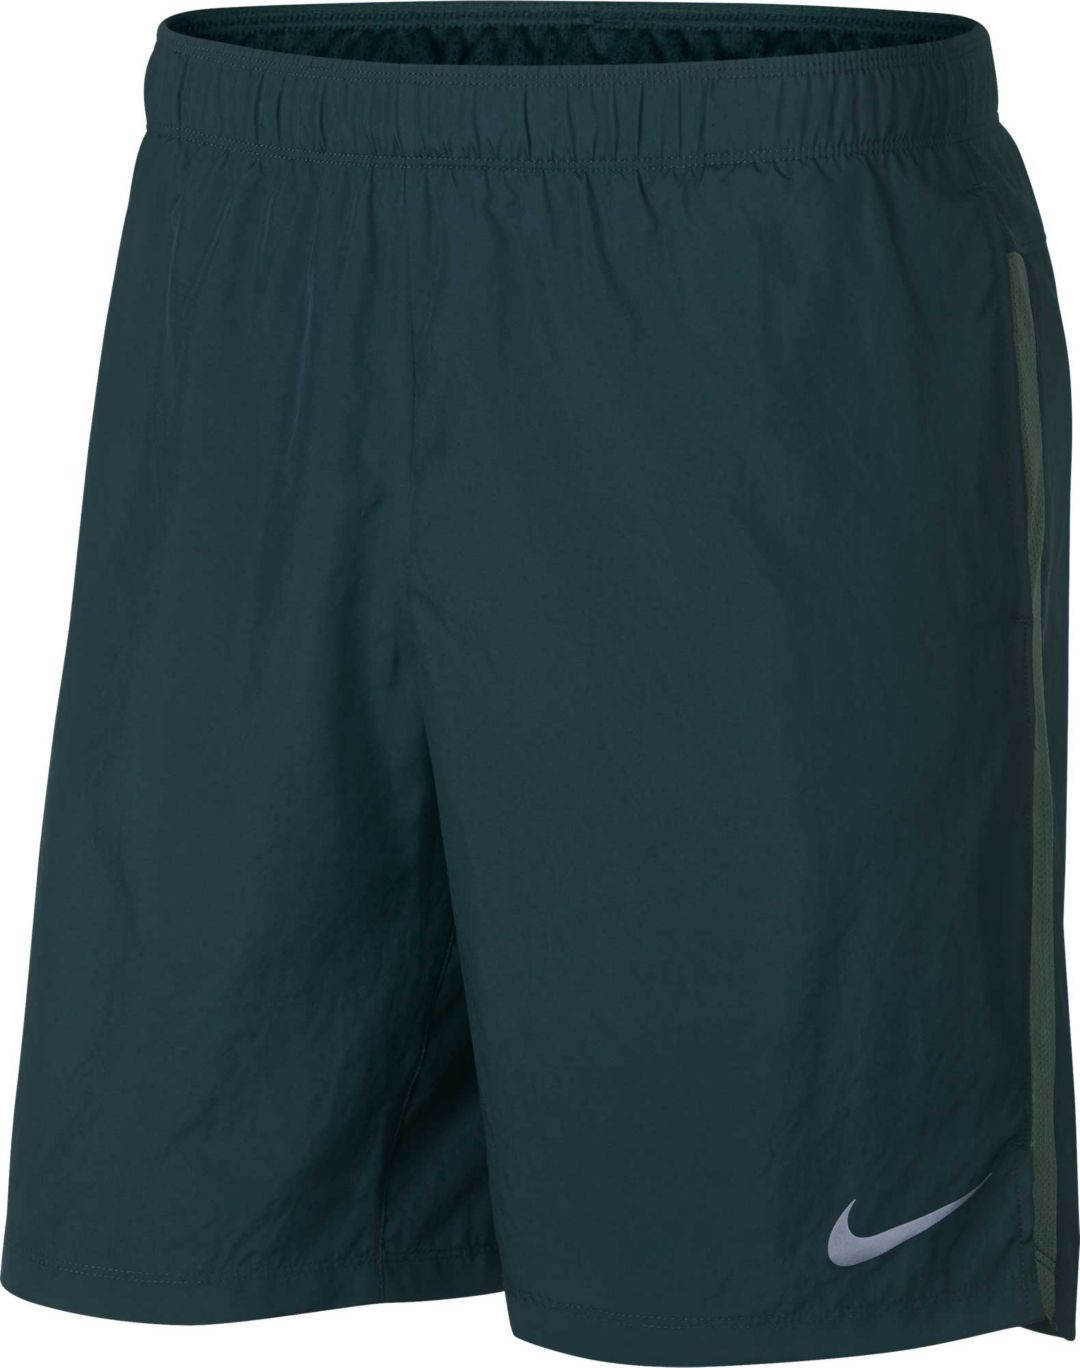 lowest price e1a39 31933 Nike Men s Dry Challenger Running Shorts